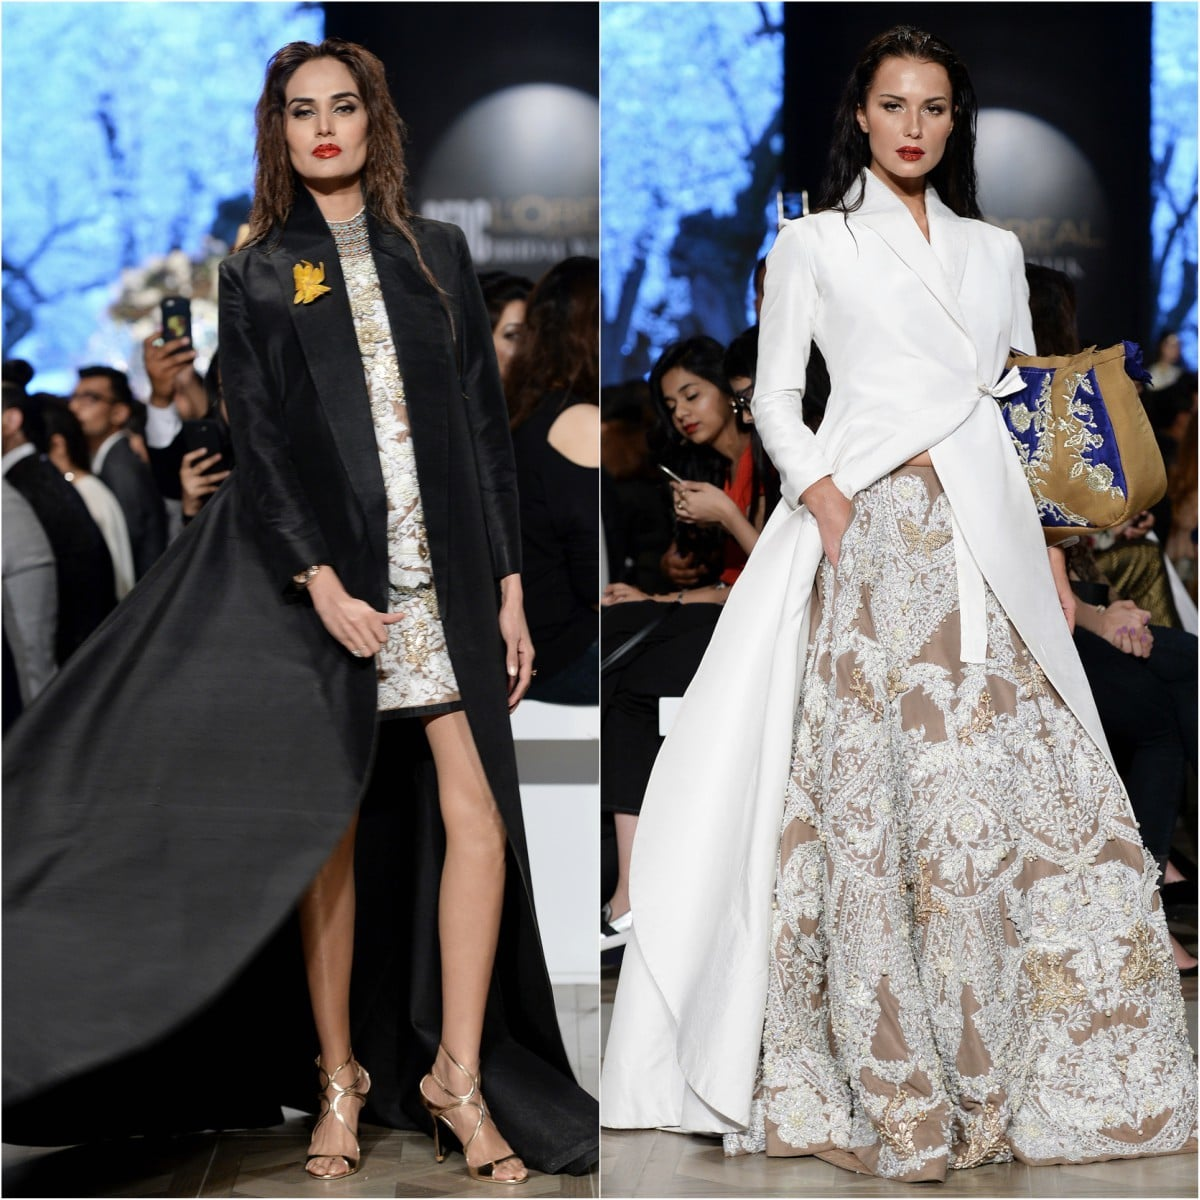 What really caught the eye, though, were the long coats, one in black and the other in white, paired with embellished apparel